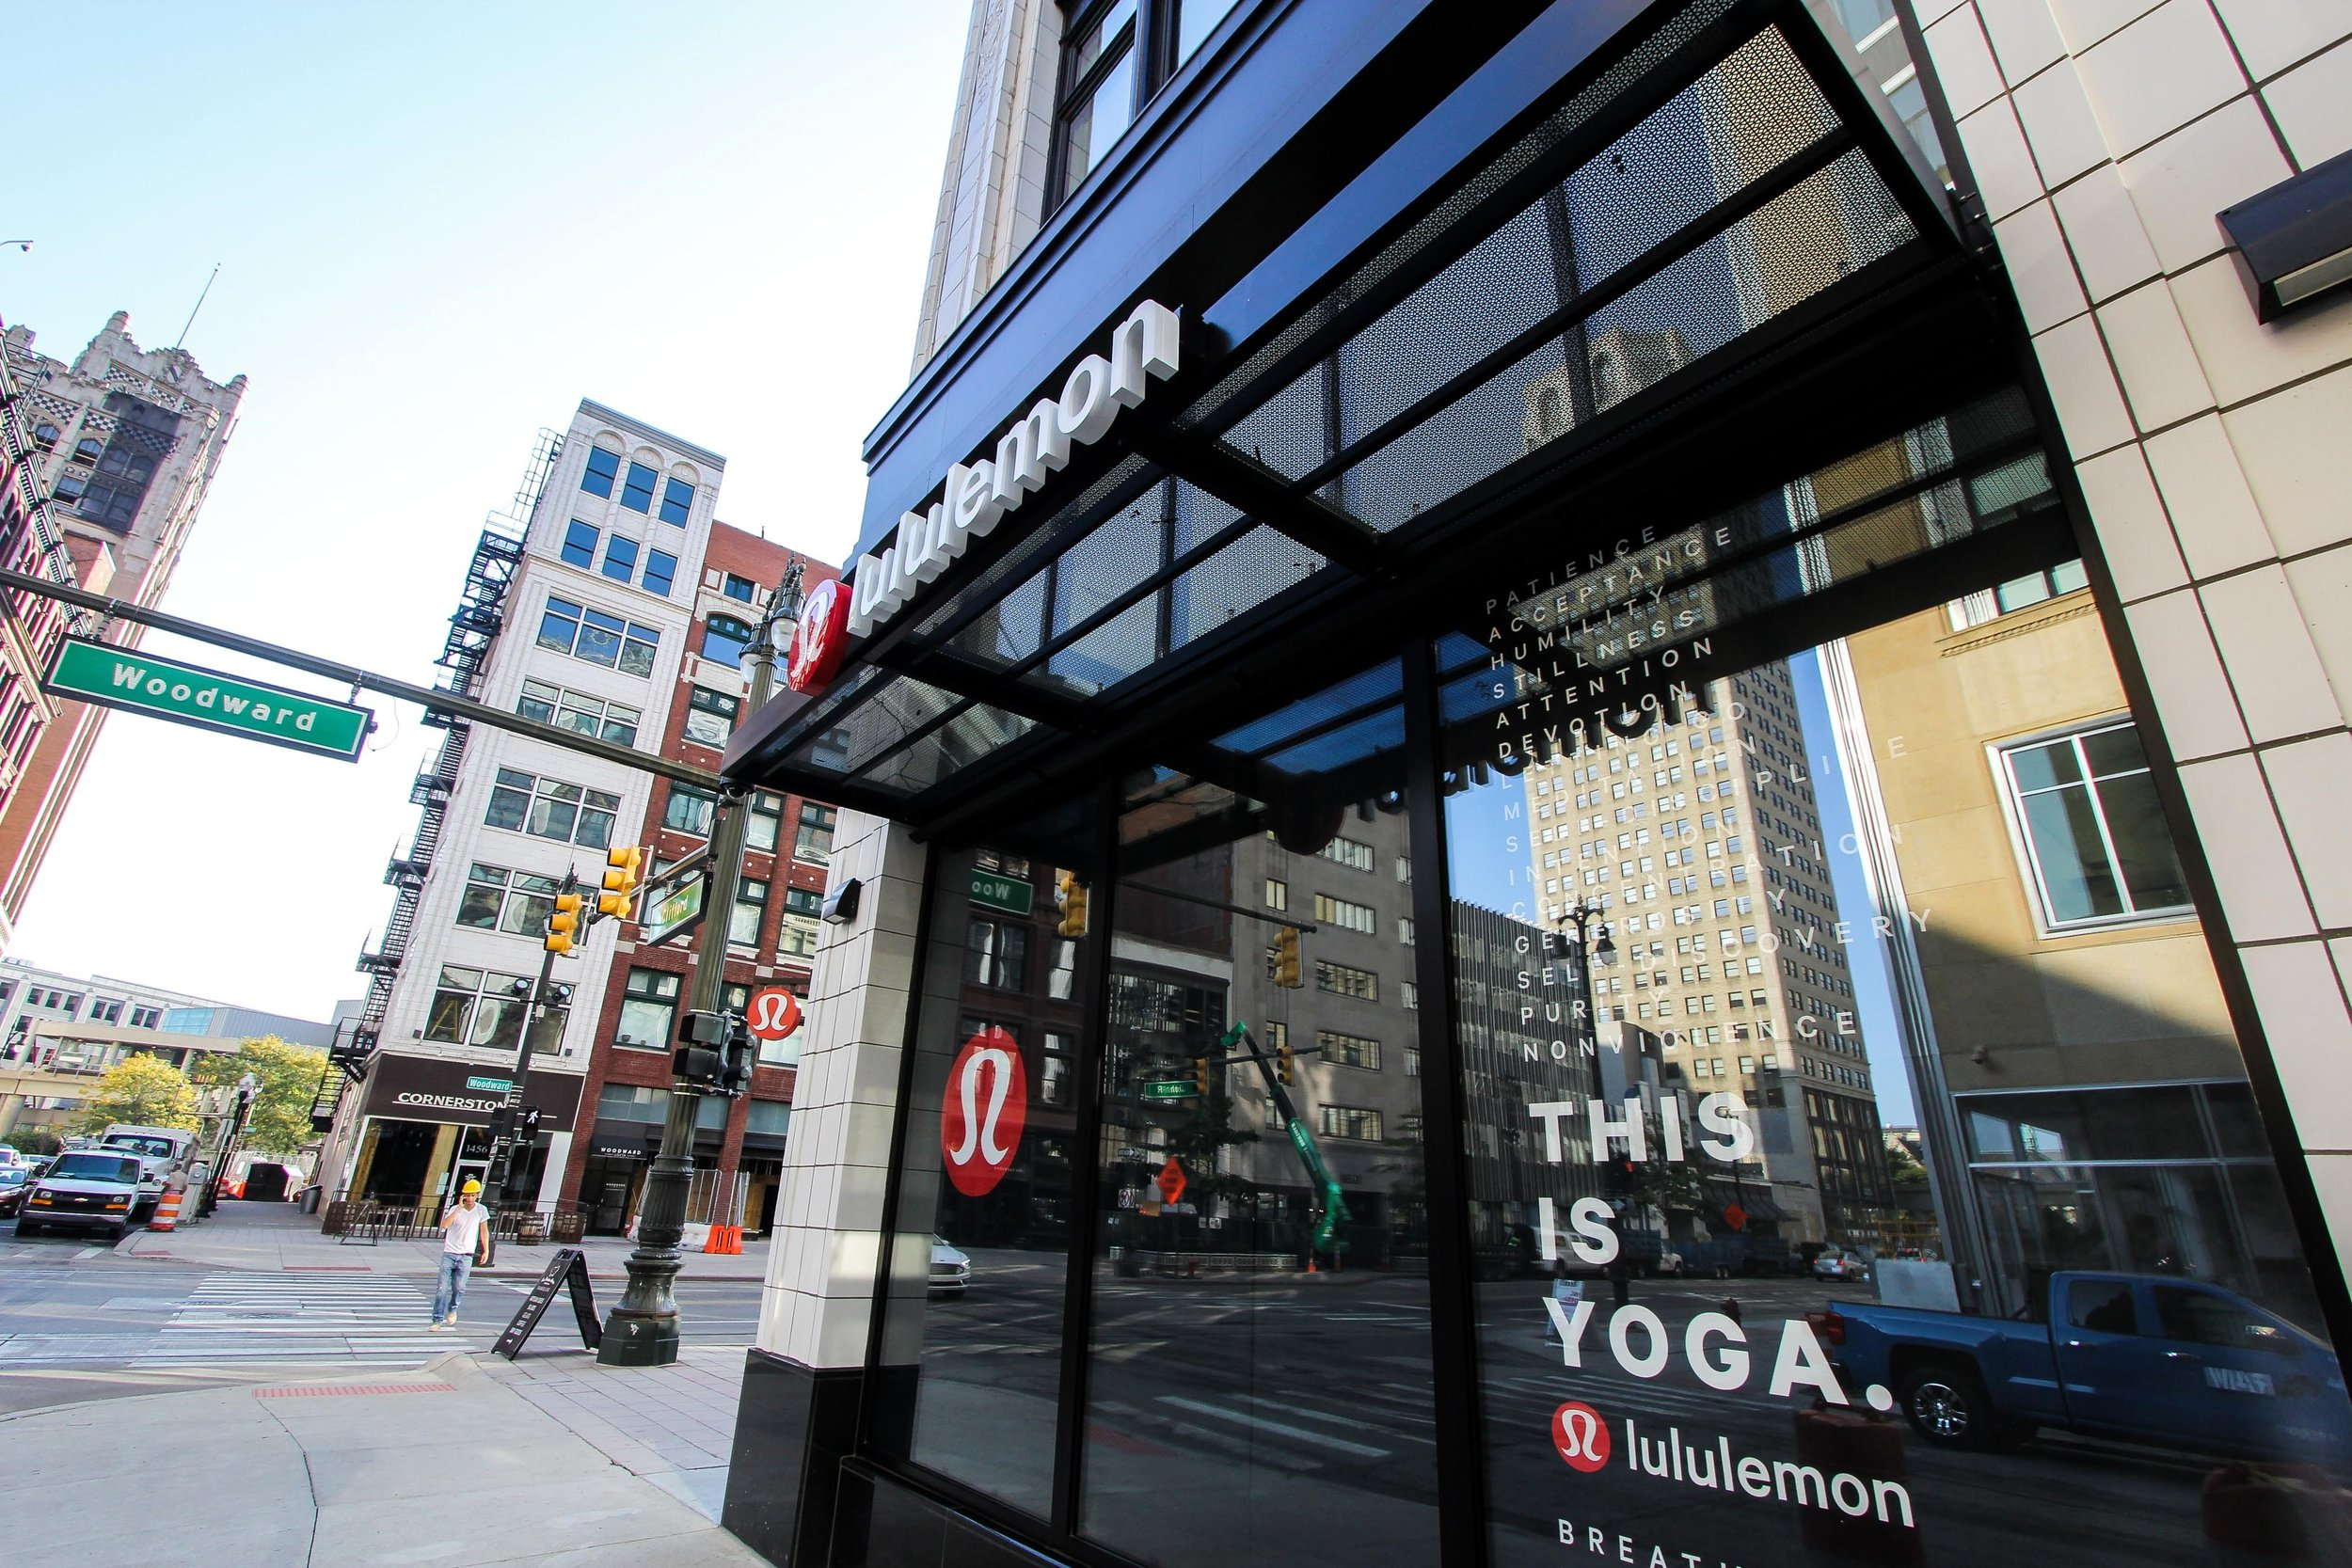 Woodward street view of new shop. Photo by @lululemon.